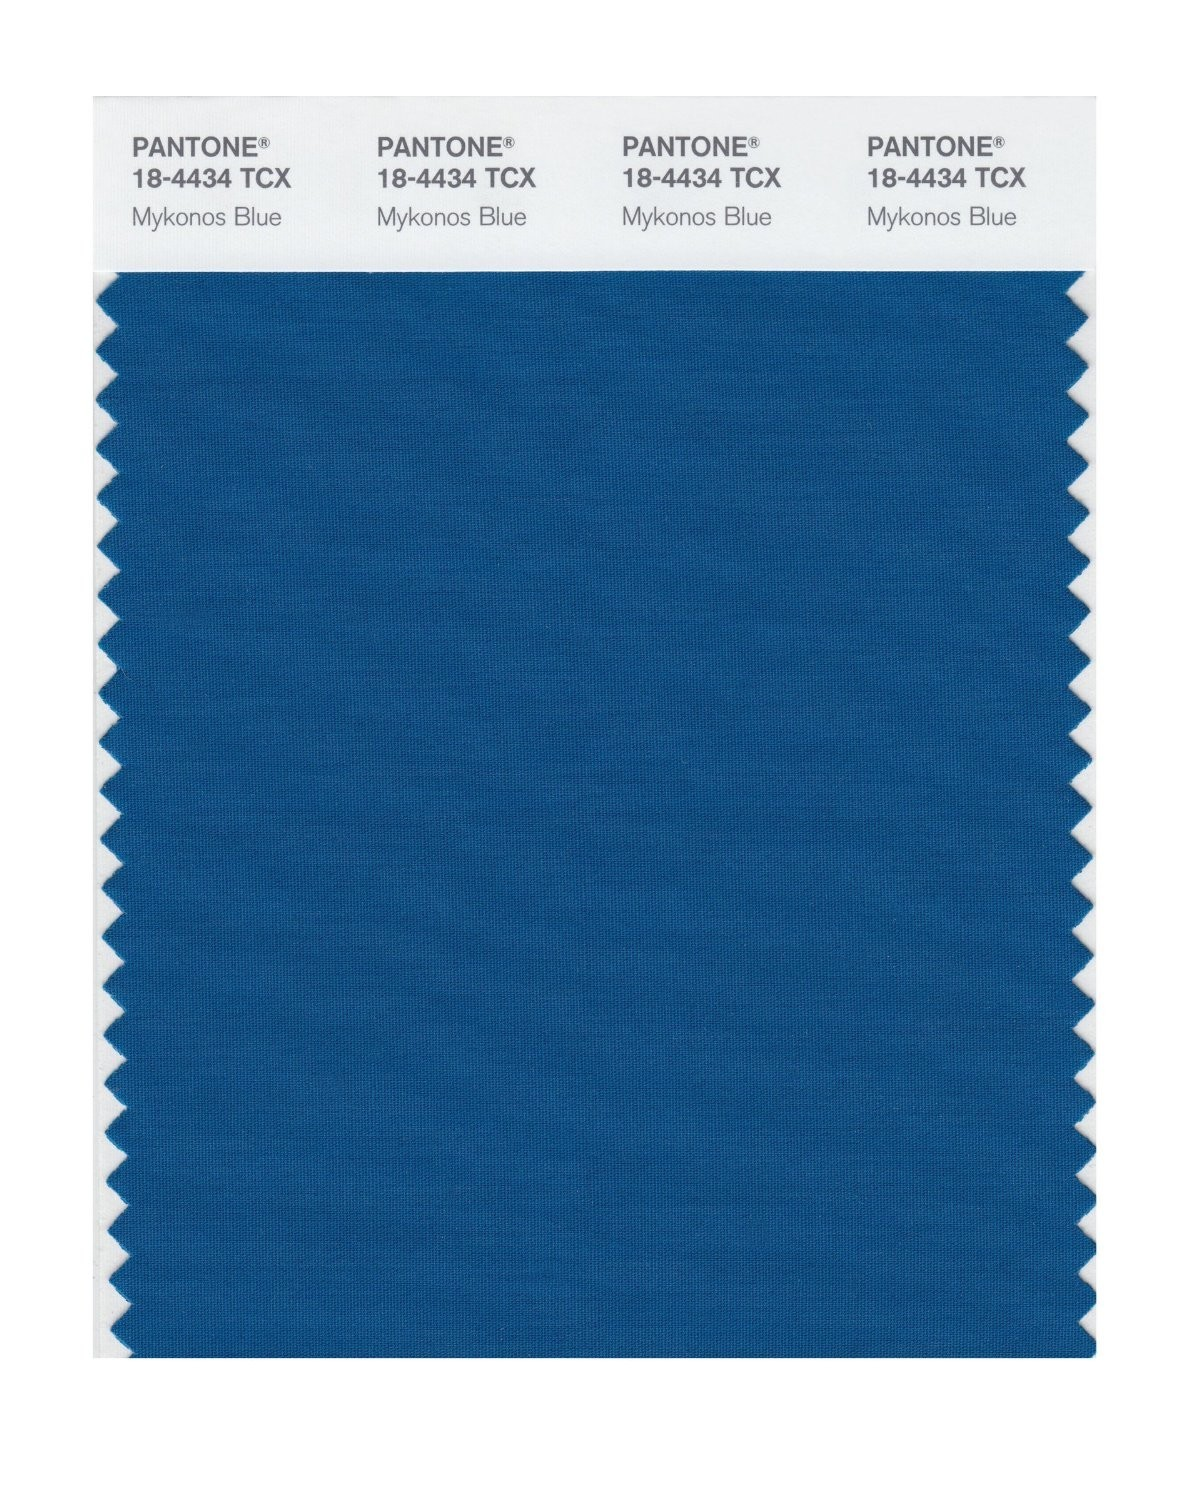 Pantone 18-4434 TCX Swatch Card Mykonos Blue